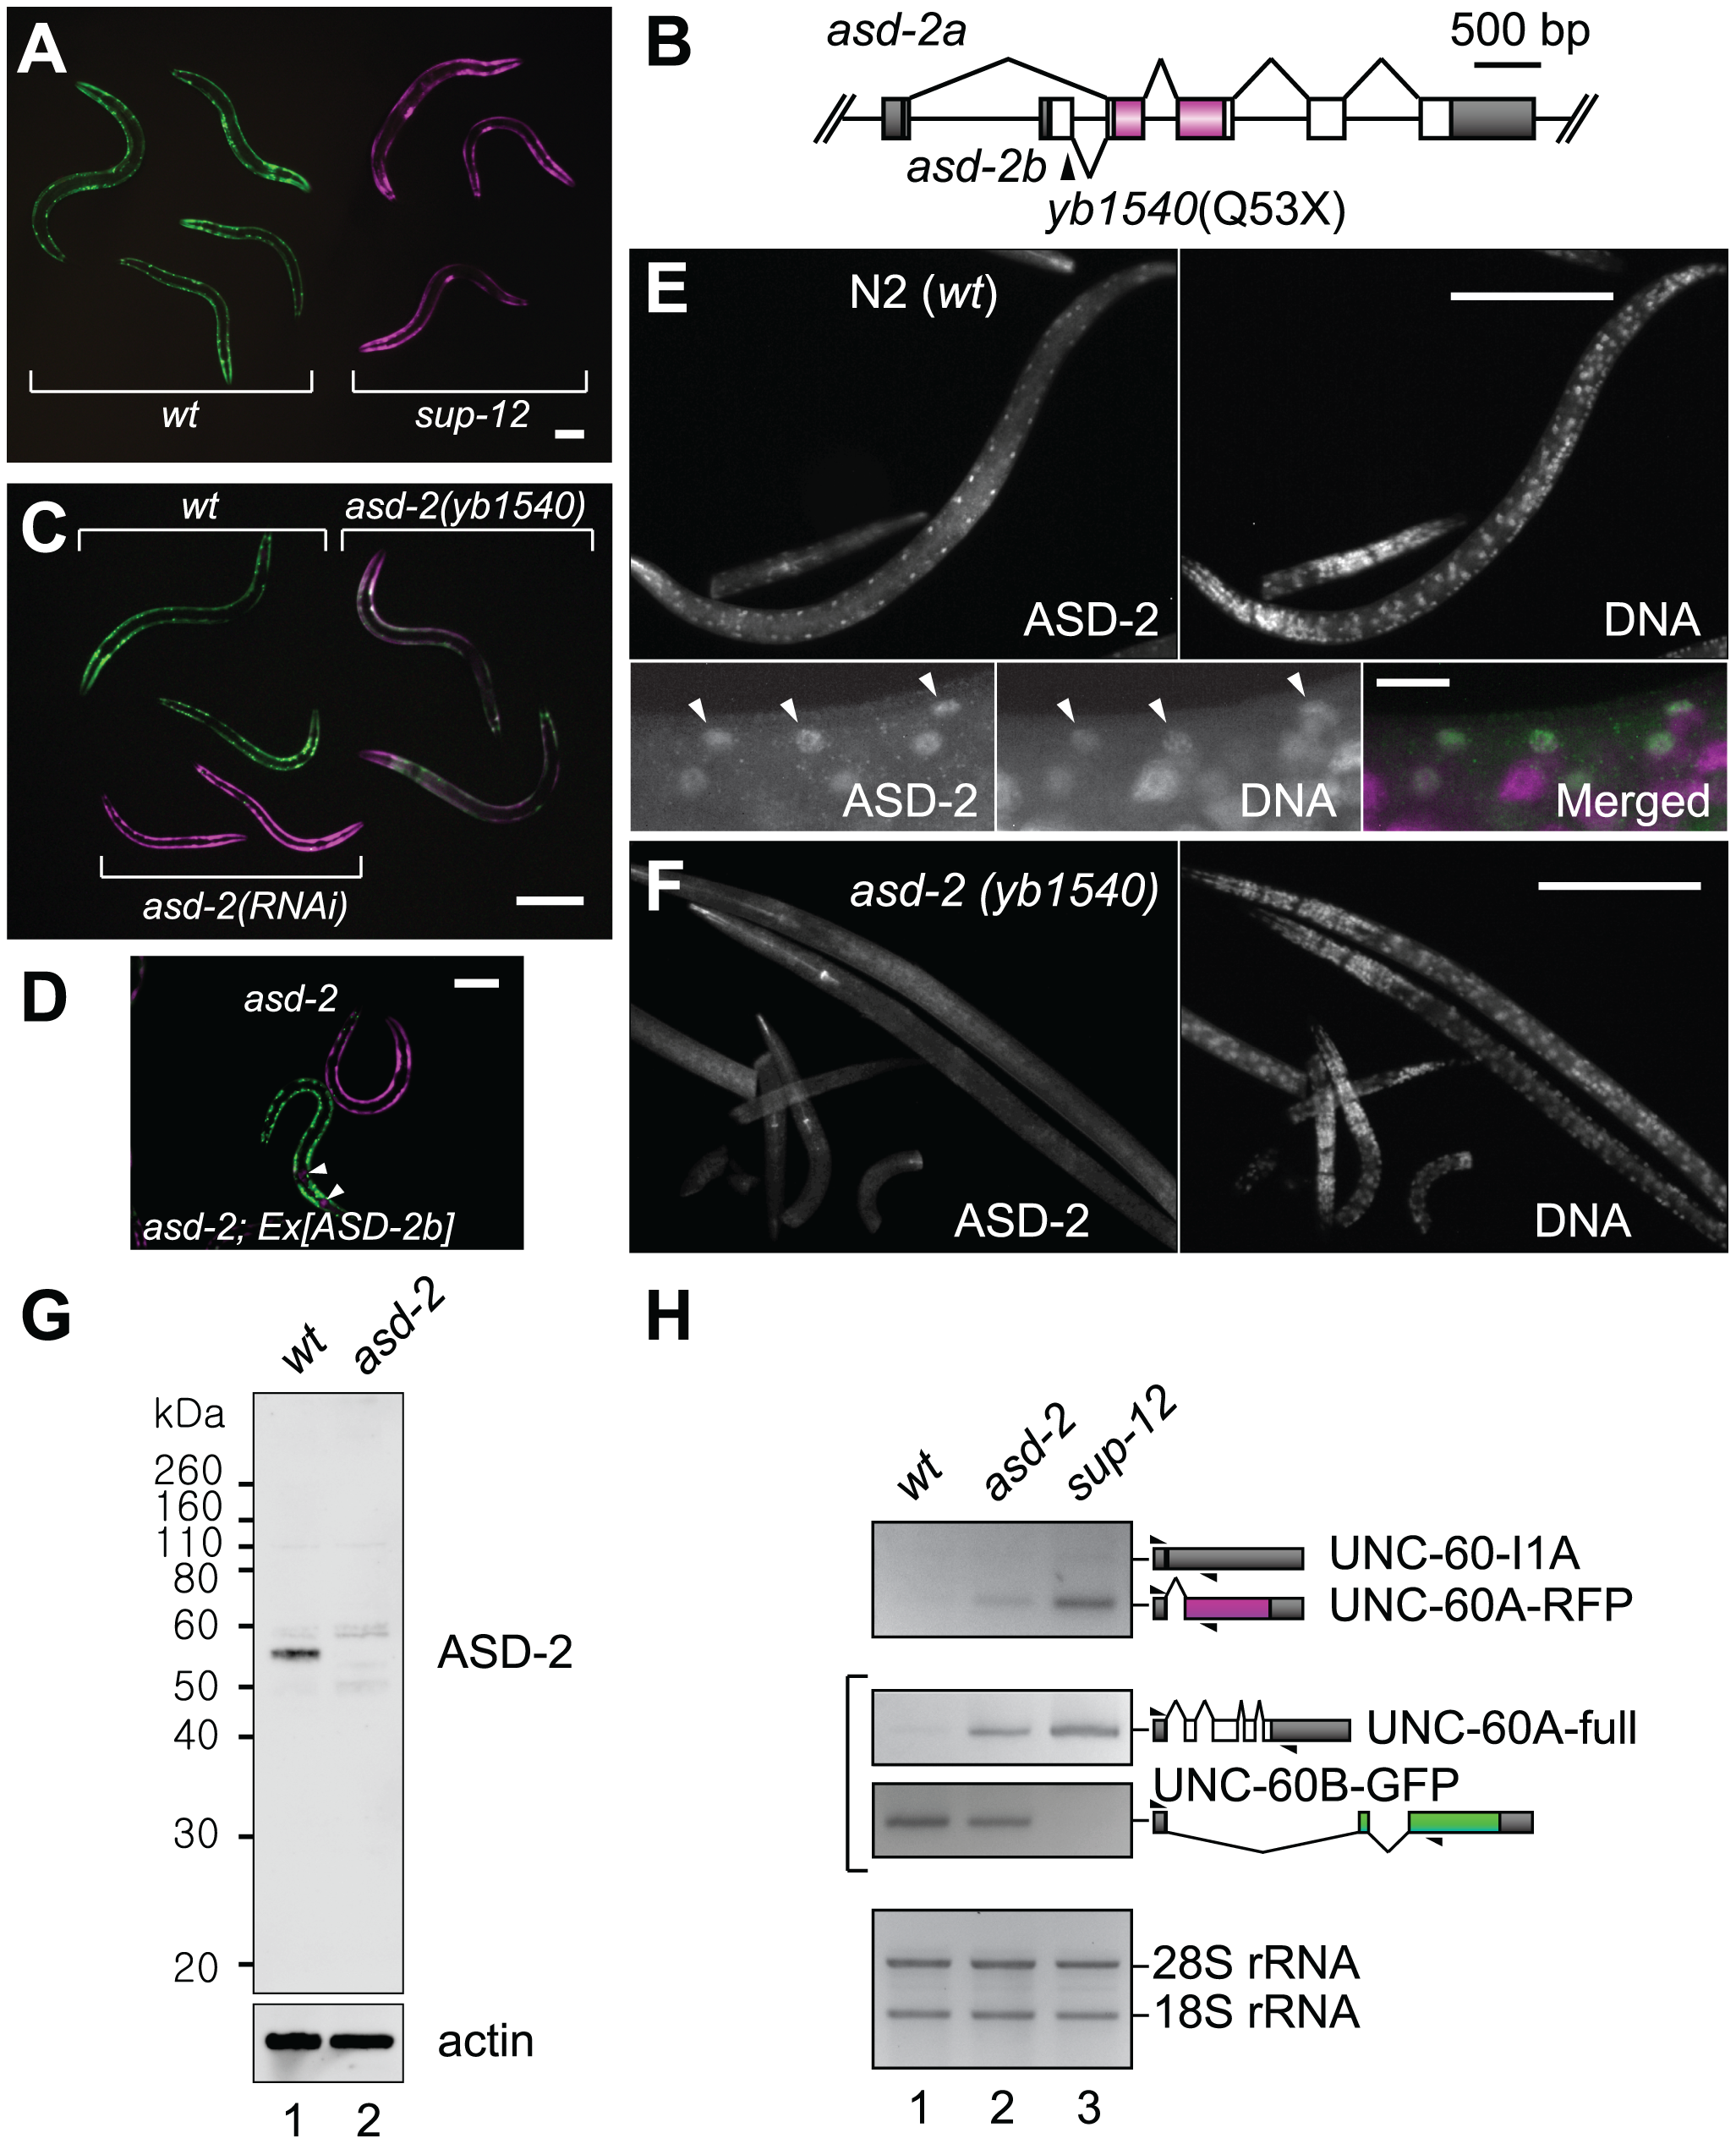 ASD-2 and SUP-12 regulate muscle-specific processing of the <i>unc-60</i> reporter in body wall muscles.